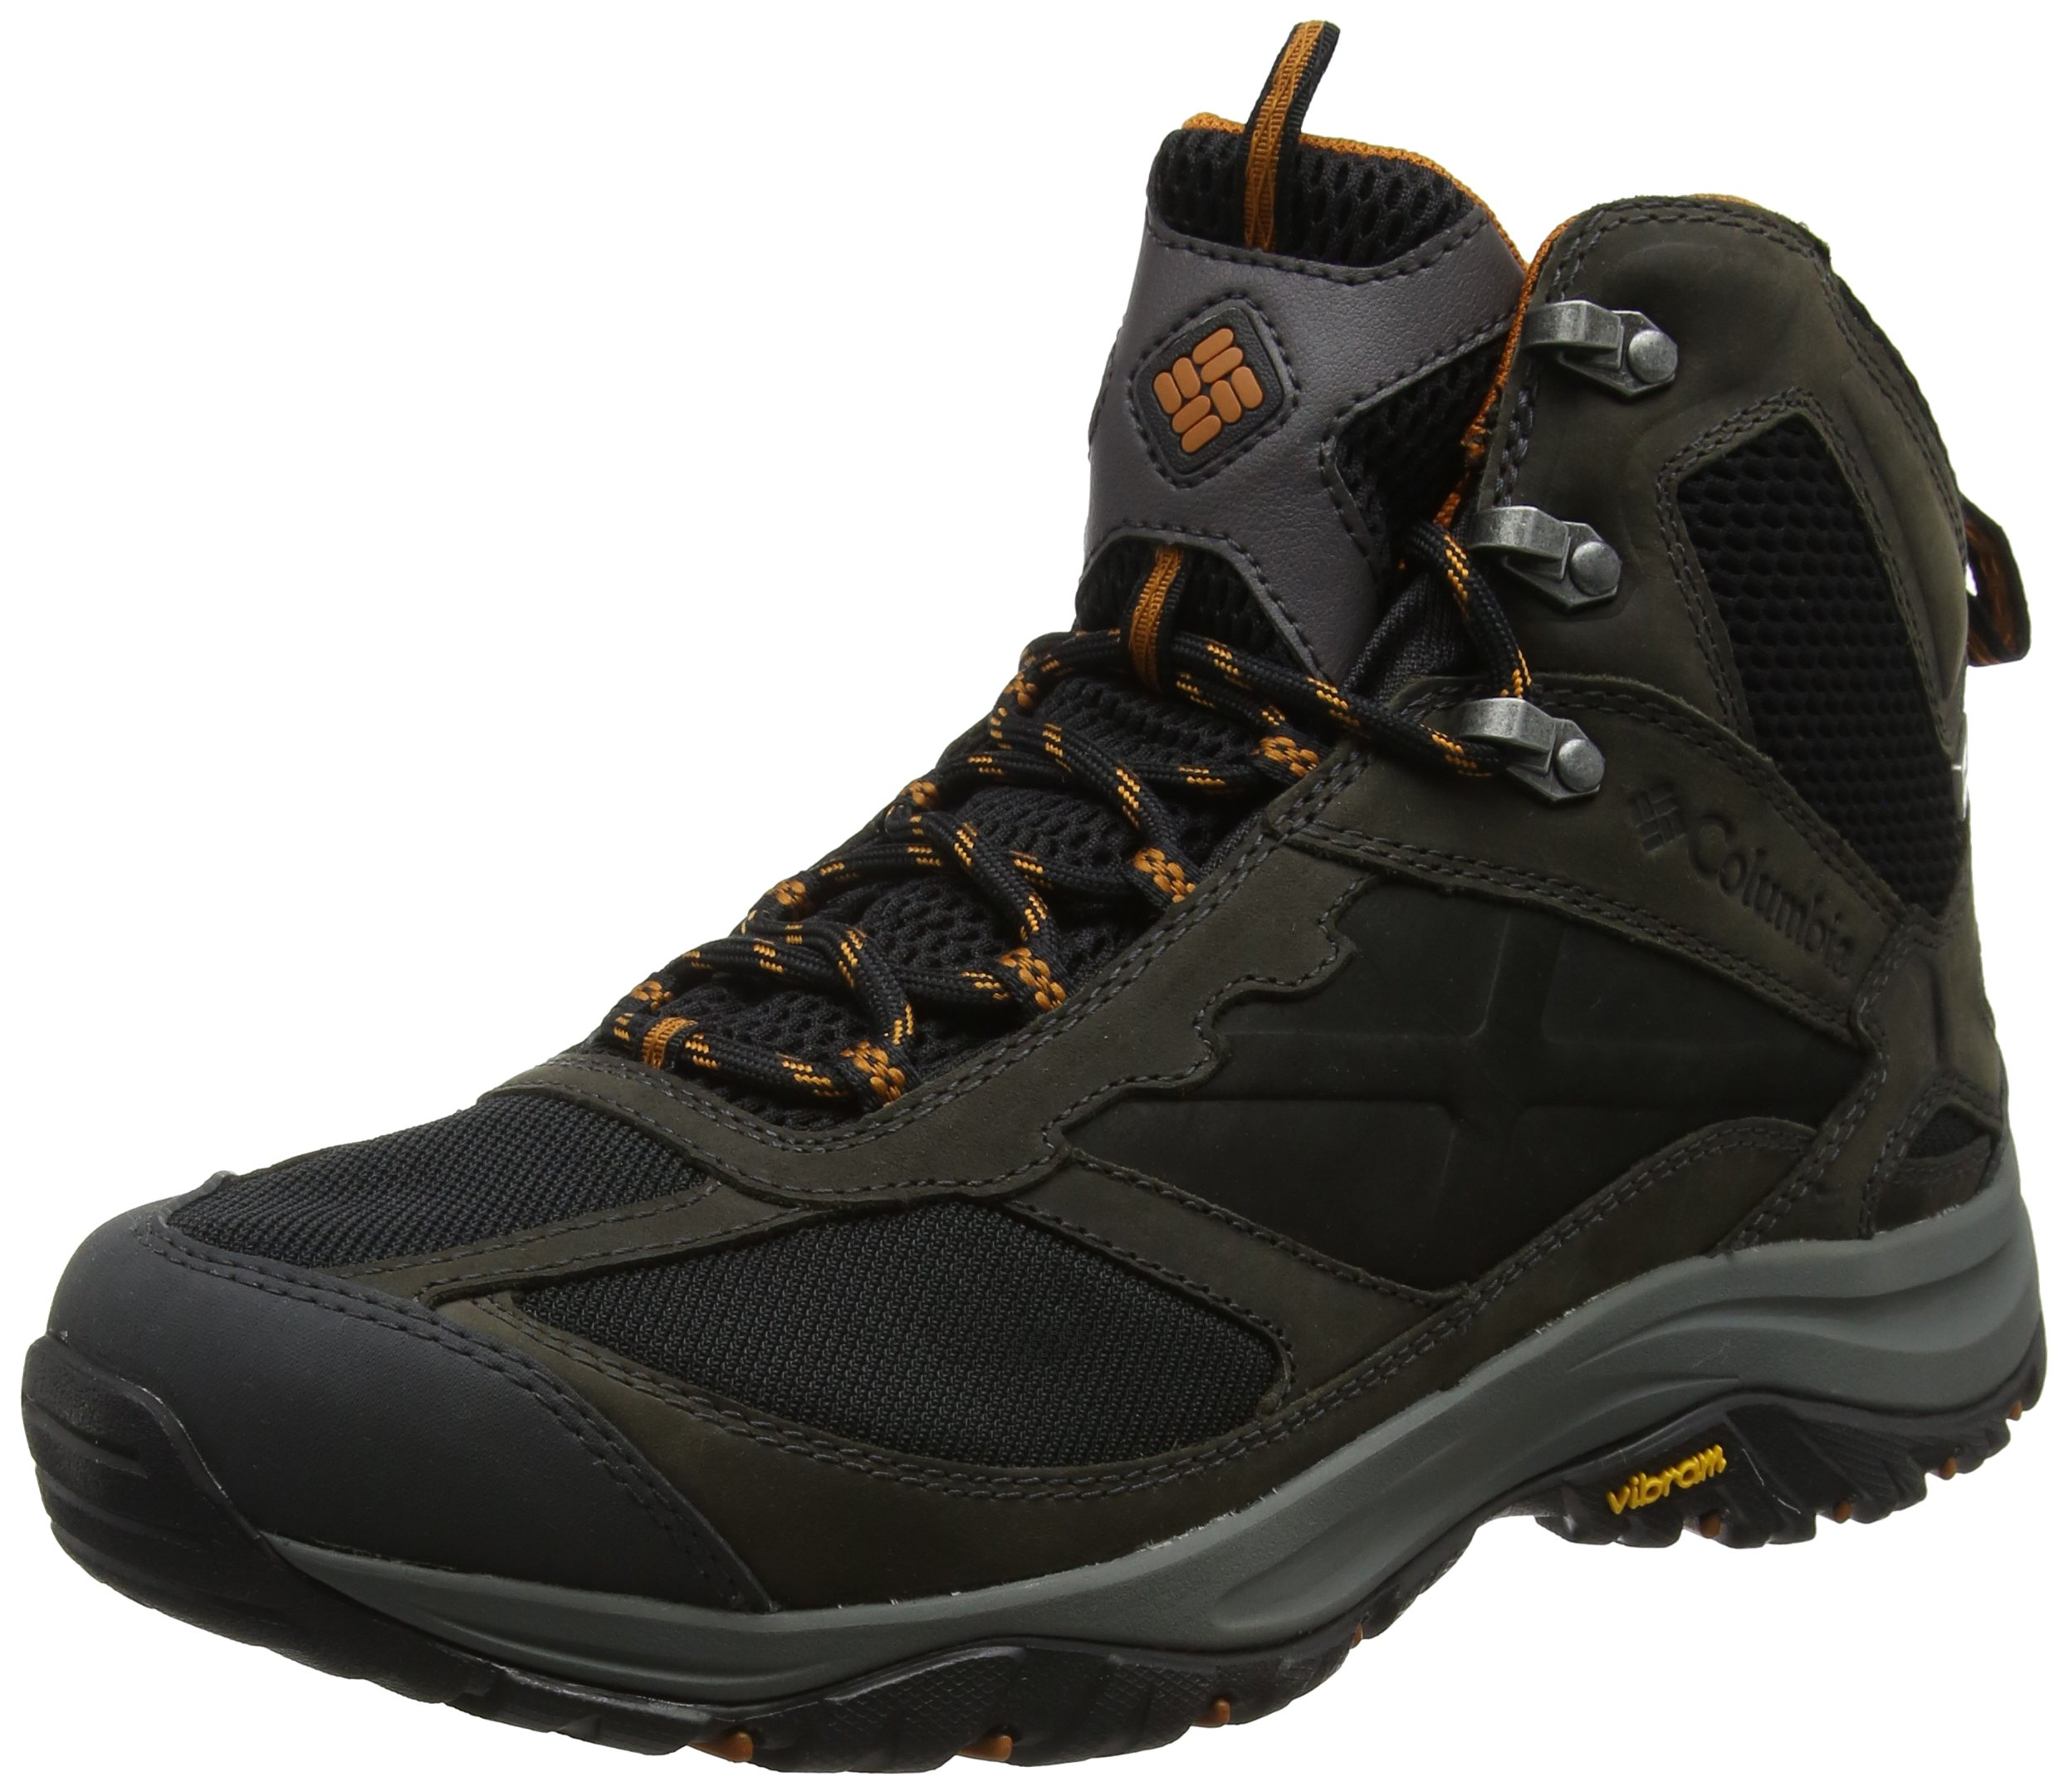 Columbia Men's Terrebonne Mid Outdry Hiking Boot, Black, Bright Copper, 11 D US by Columbia